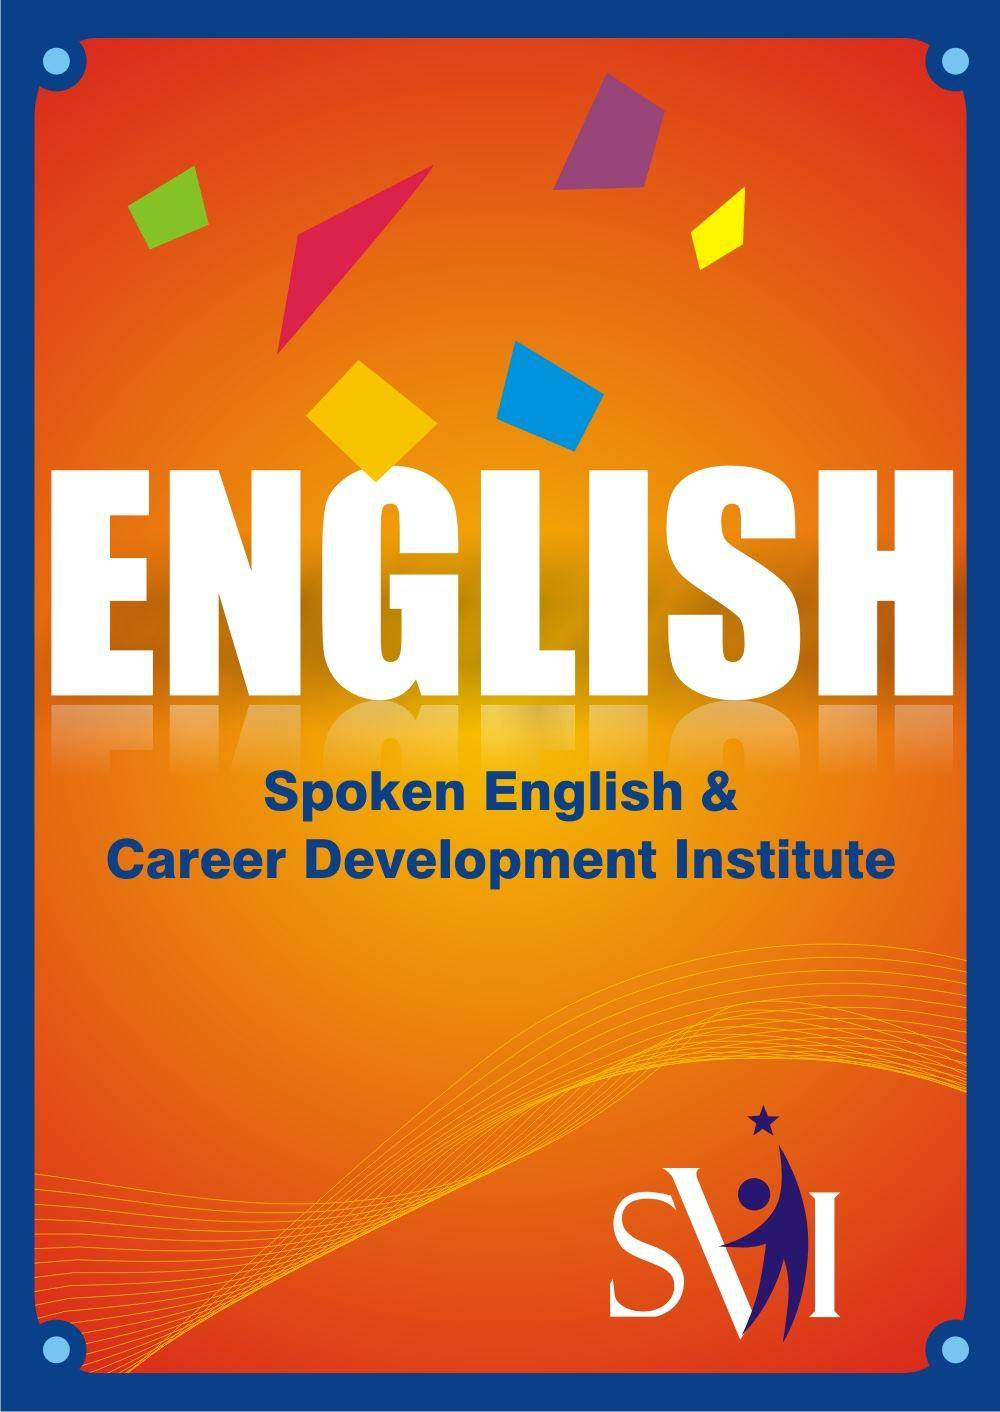 Bangla PDF Book: Easiest and efficient methods of Spoken English